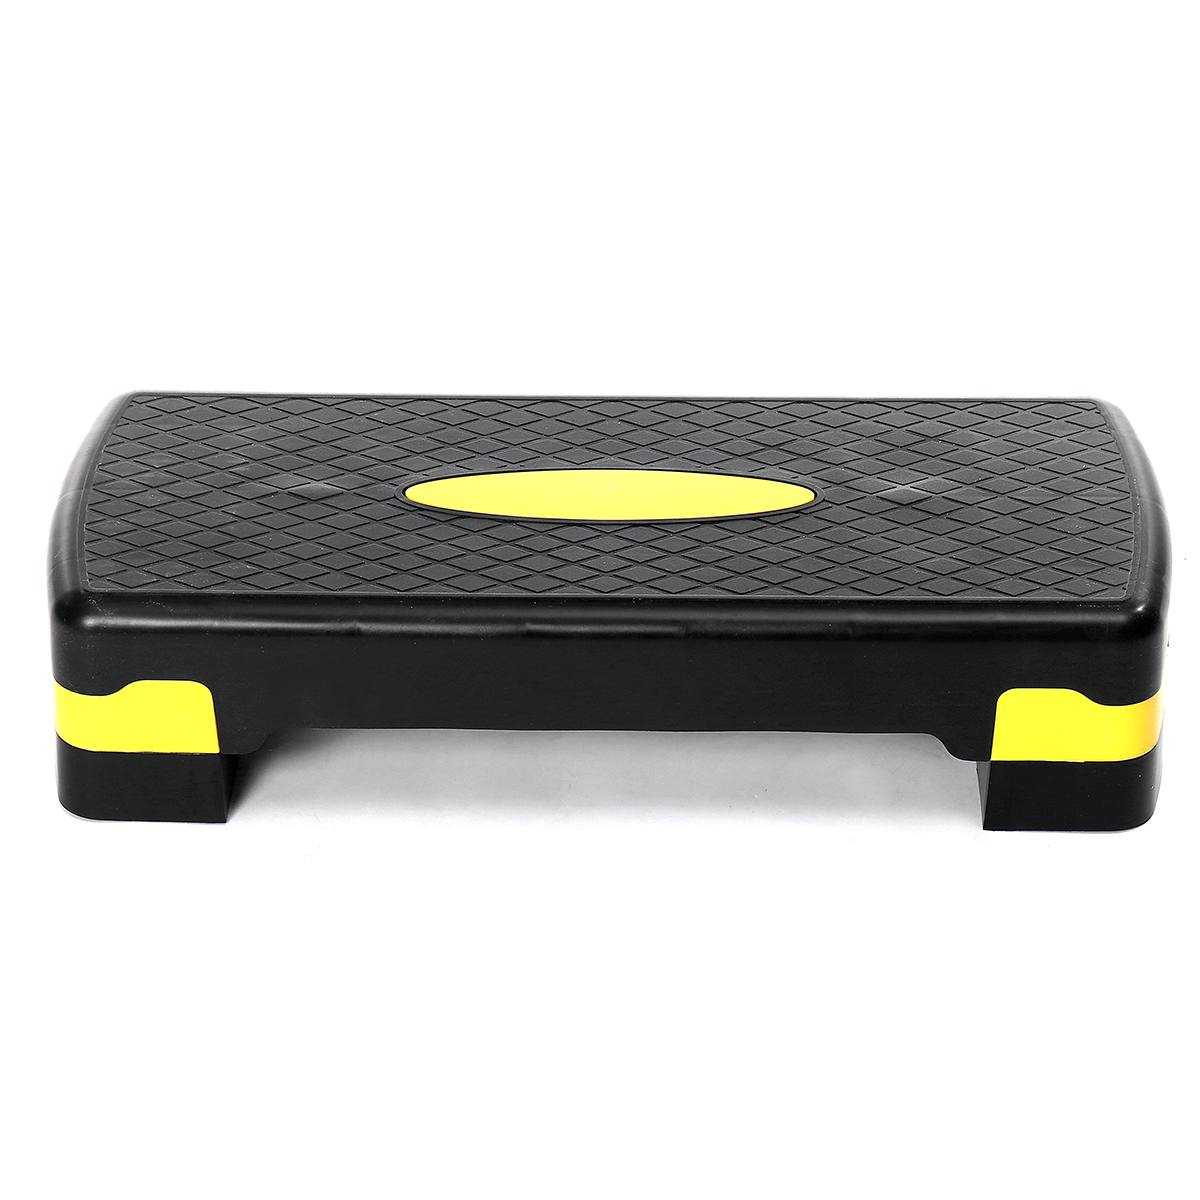 Adjustable Fitness Aerobic Step Non-slip Cardio Yoga Pedal Stepper Gym Workout Exercise Fitness Aerobic Step Equipment 100KG